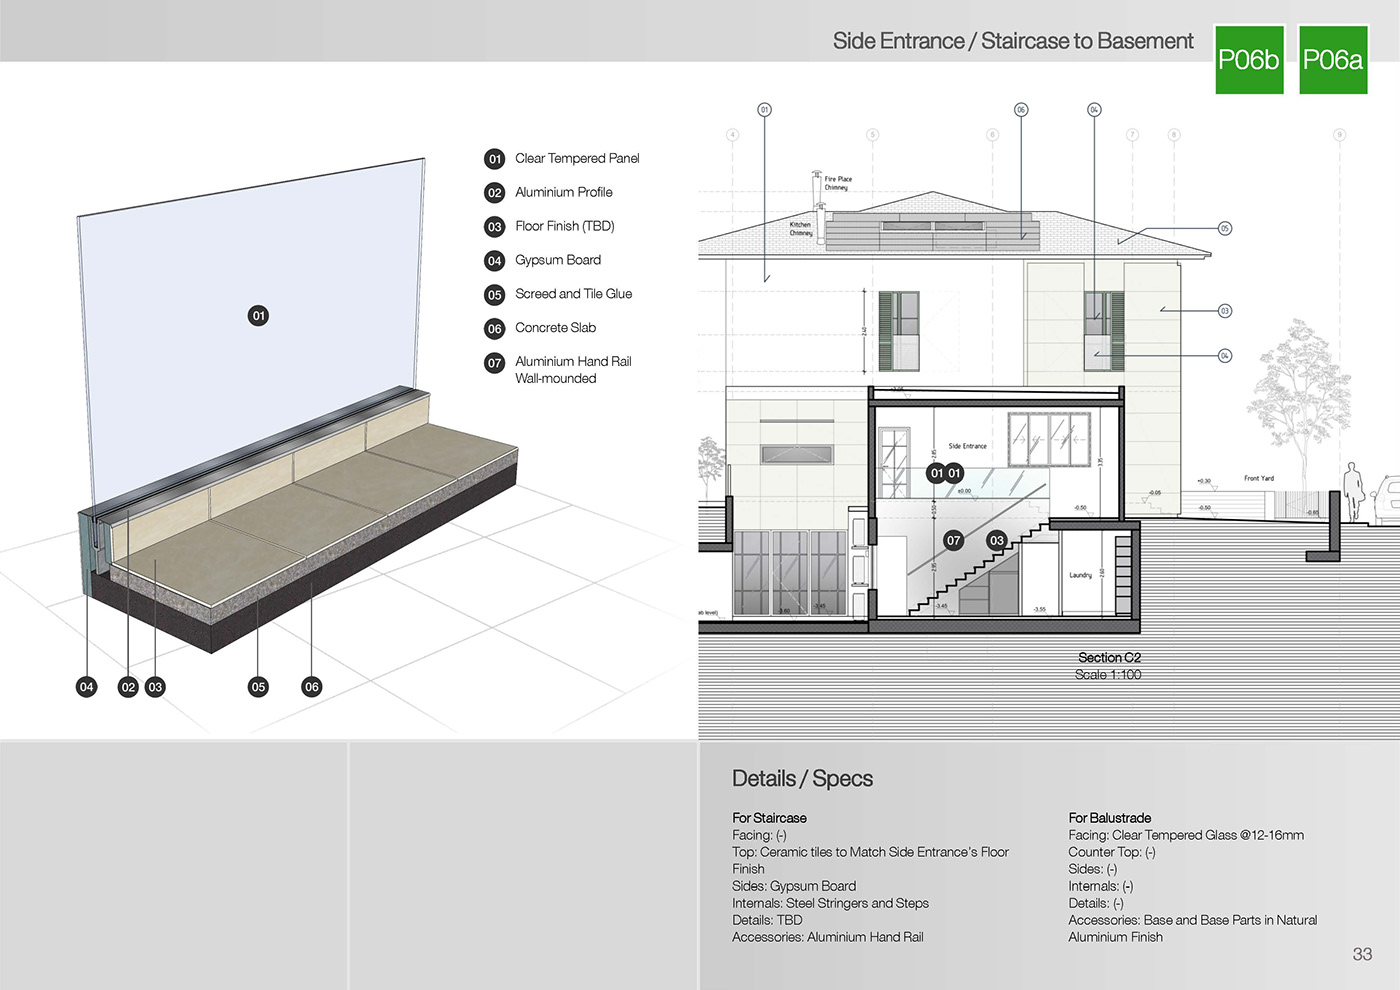 Architecture: Preliminary & Blueprints on Behance